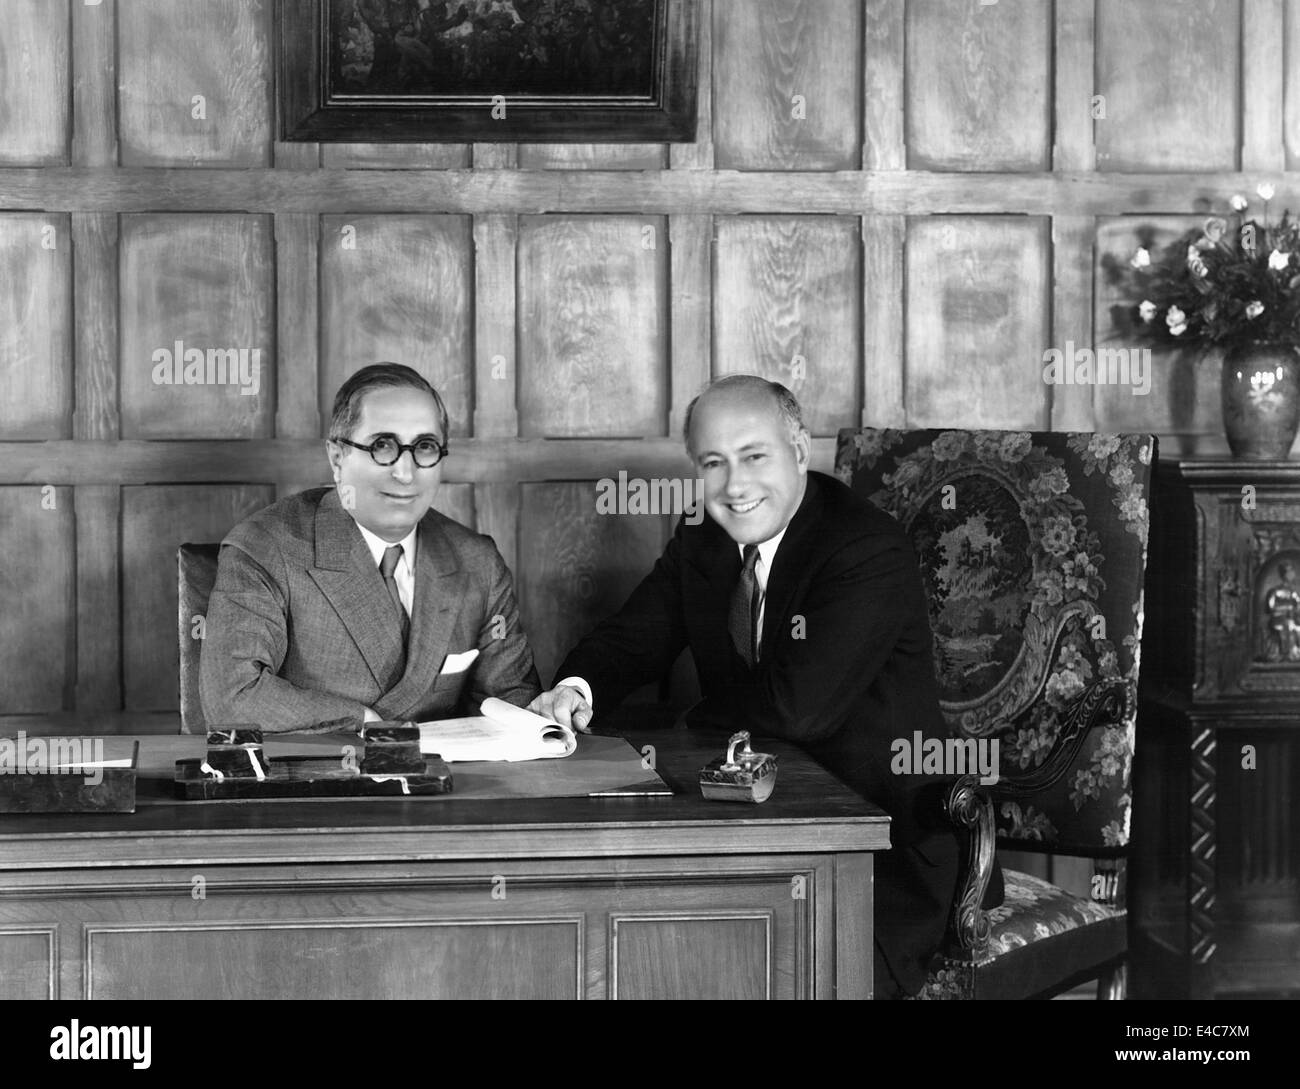 Louis B. Mayer, American Film Producer, and Cecil B. DeMille, American Film Director, Portrait, circa 1930 - Stock Image